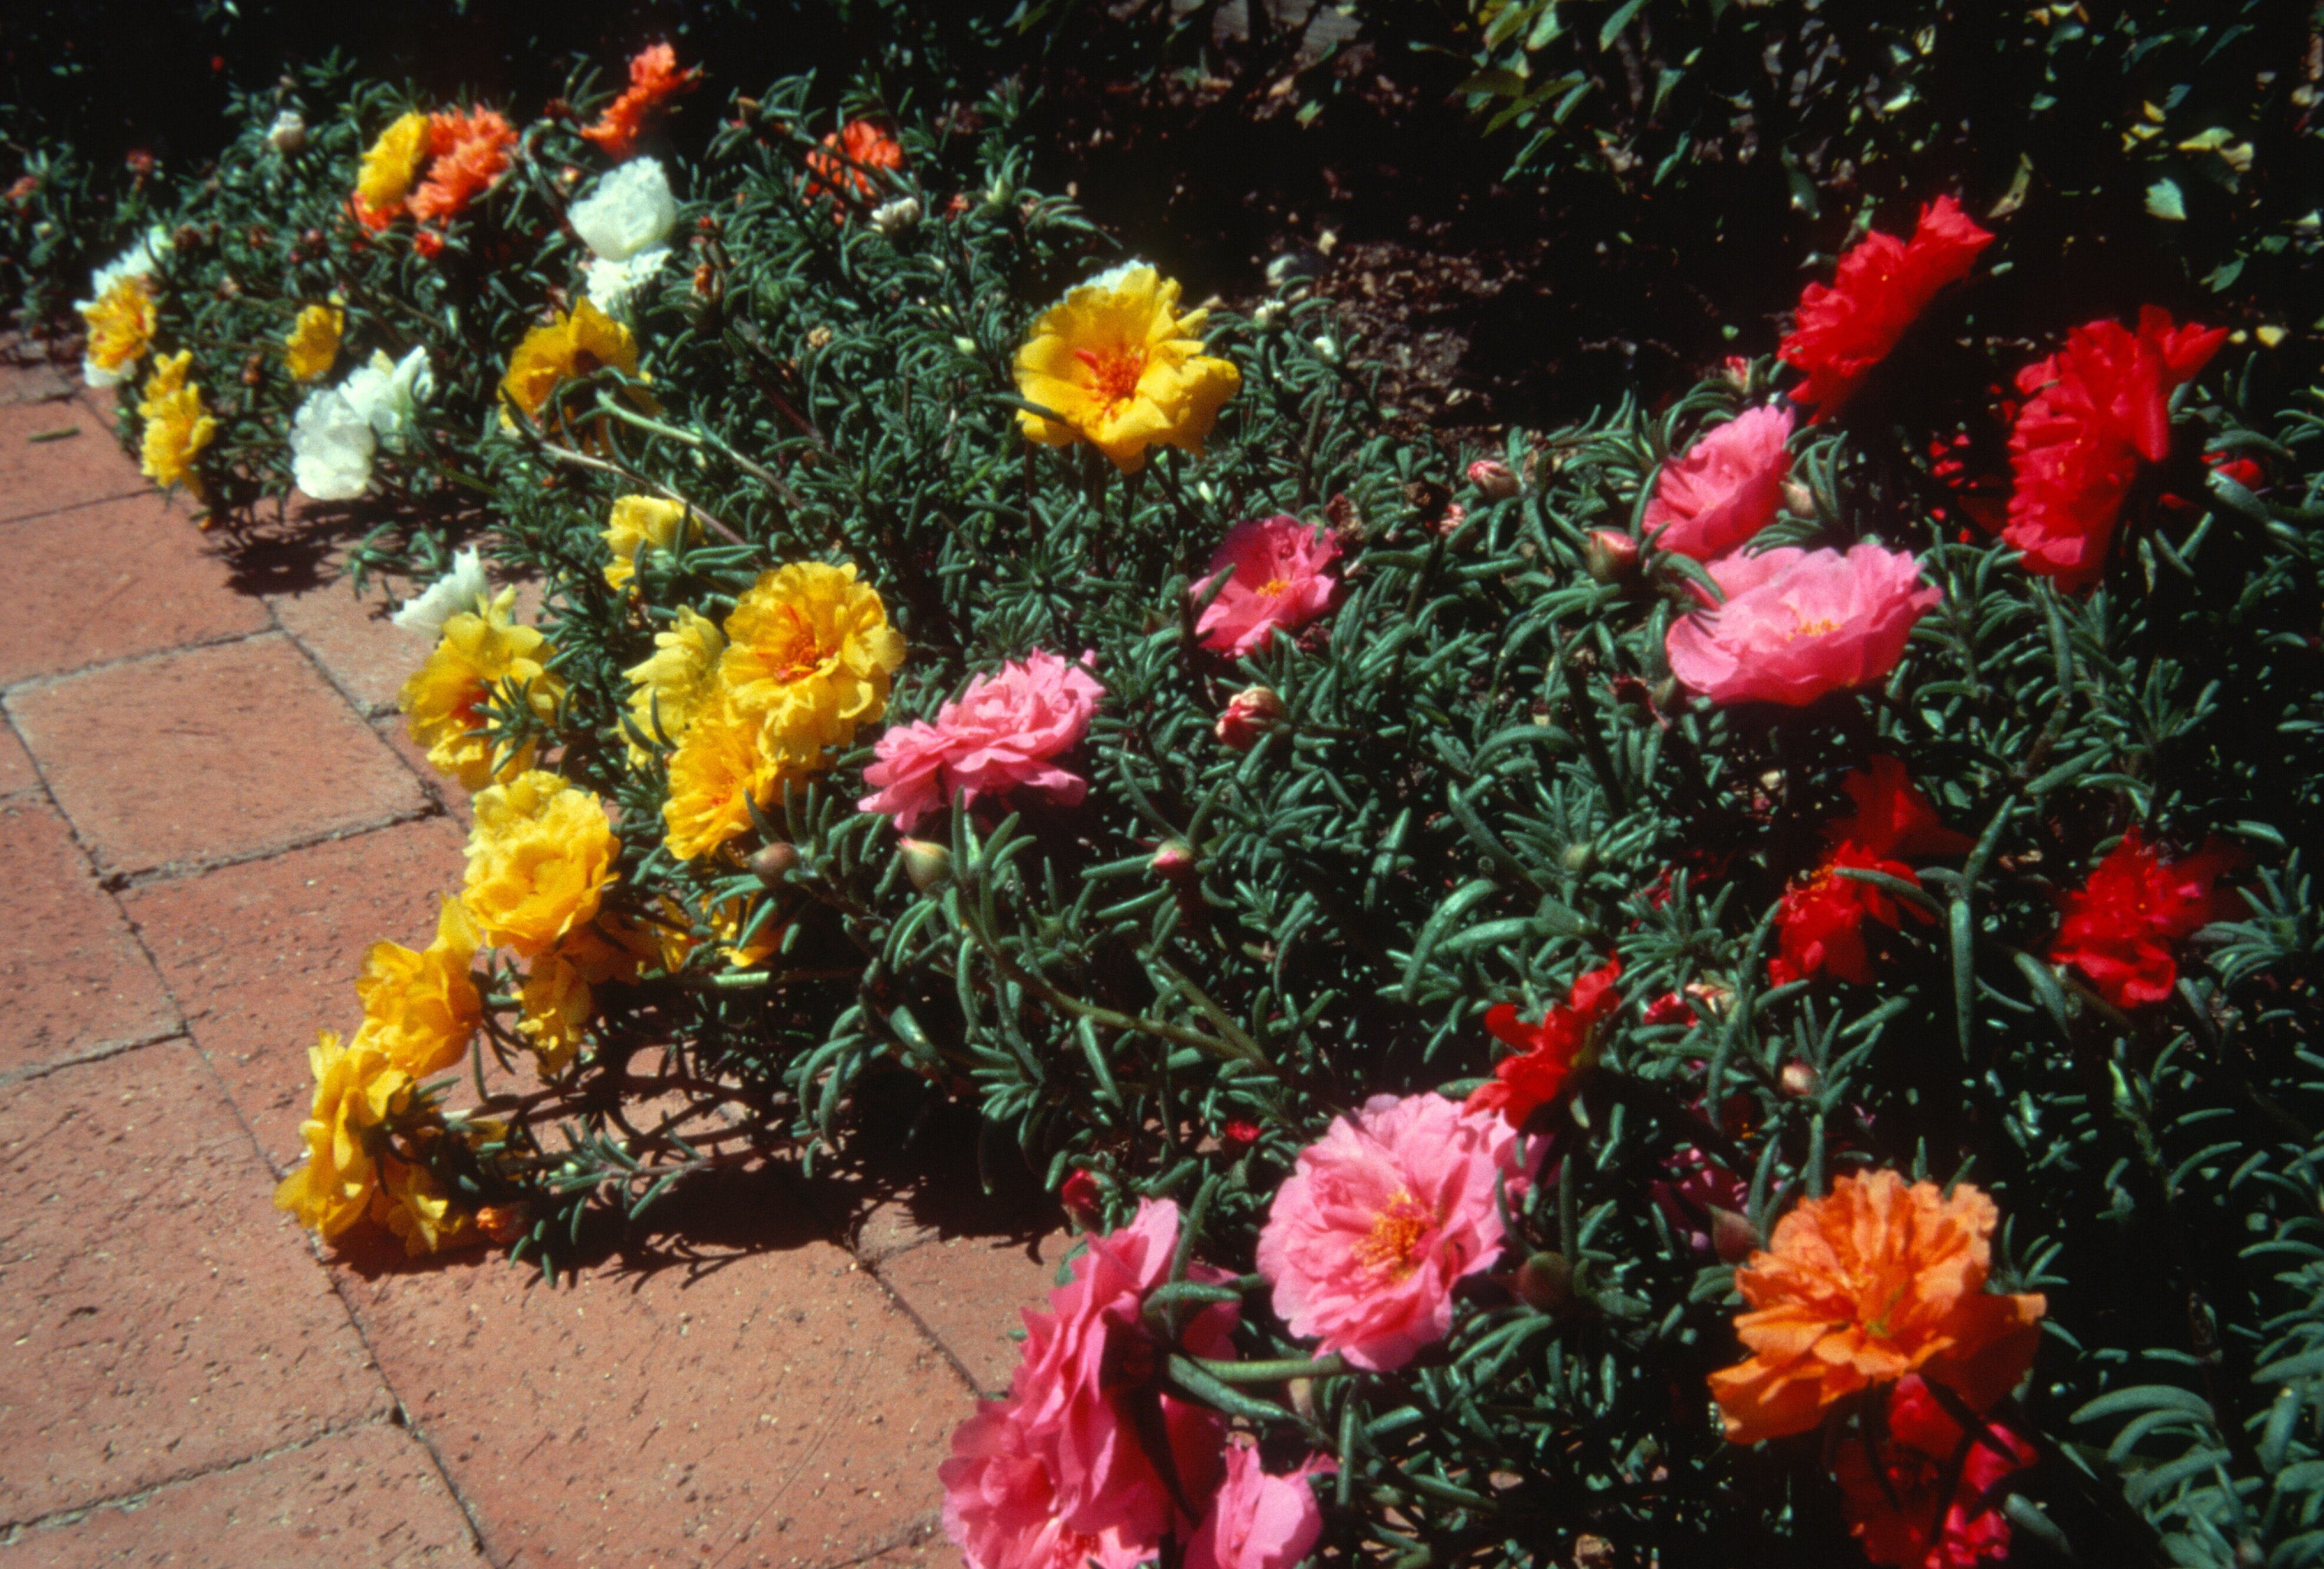 How to grow moss rose gardening moss rose growing portulaca - When to plant roses ...